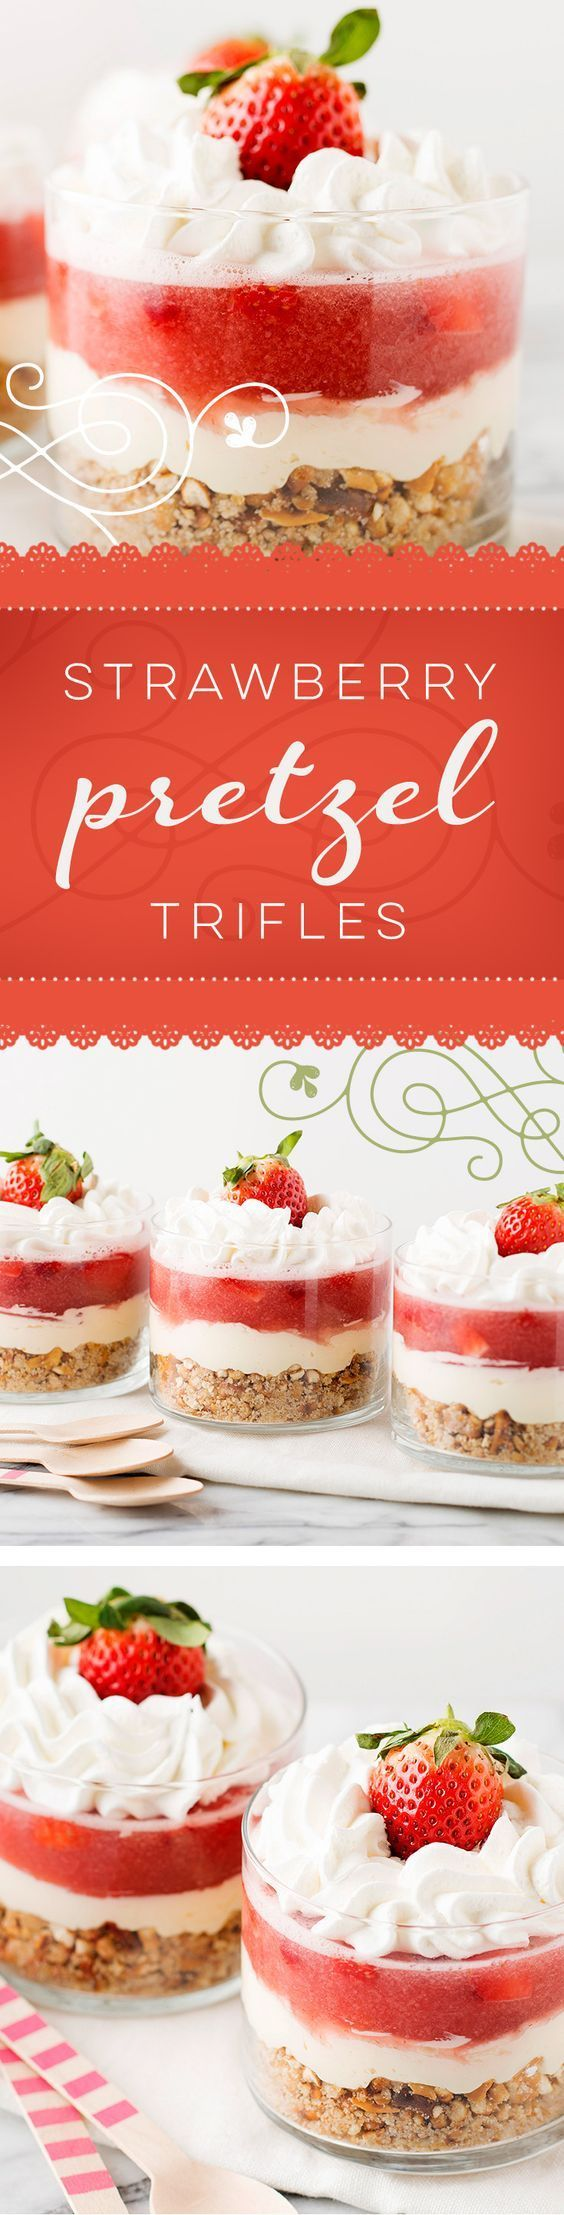 Yum! These little strawberry trifle desserts look amazing! Can't wait to make this fresh fruit recipe!